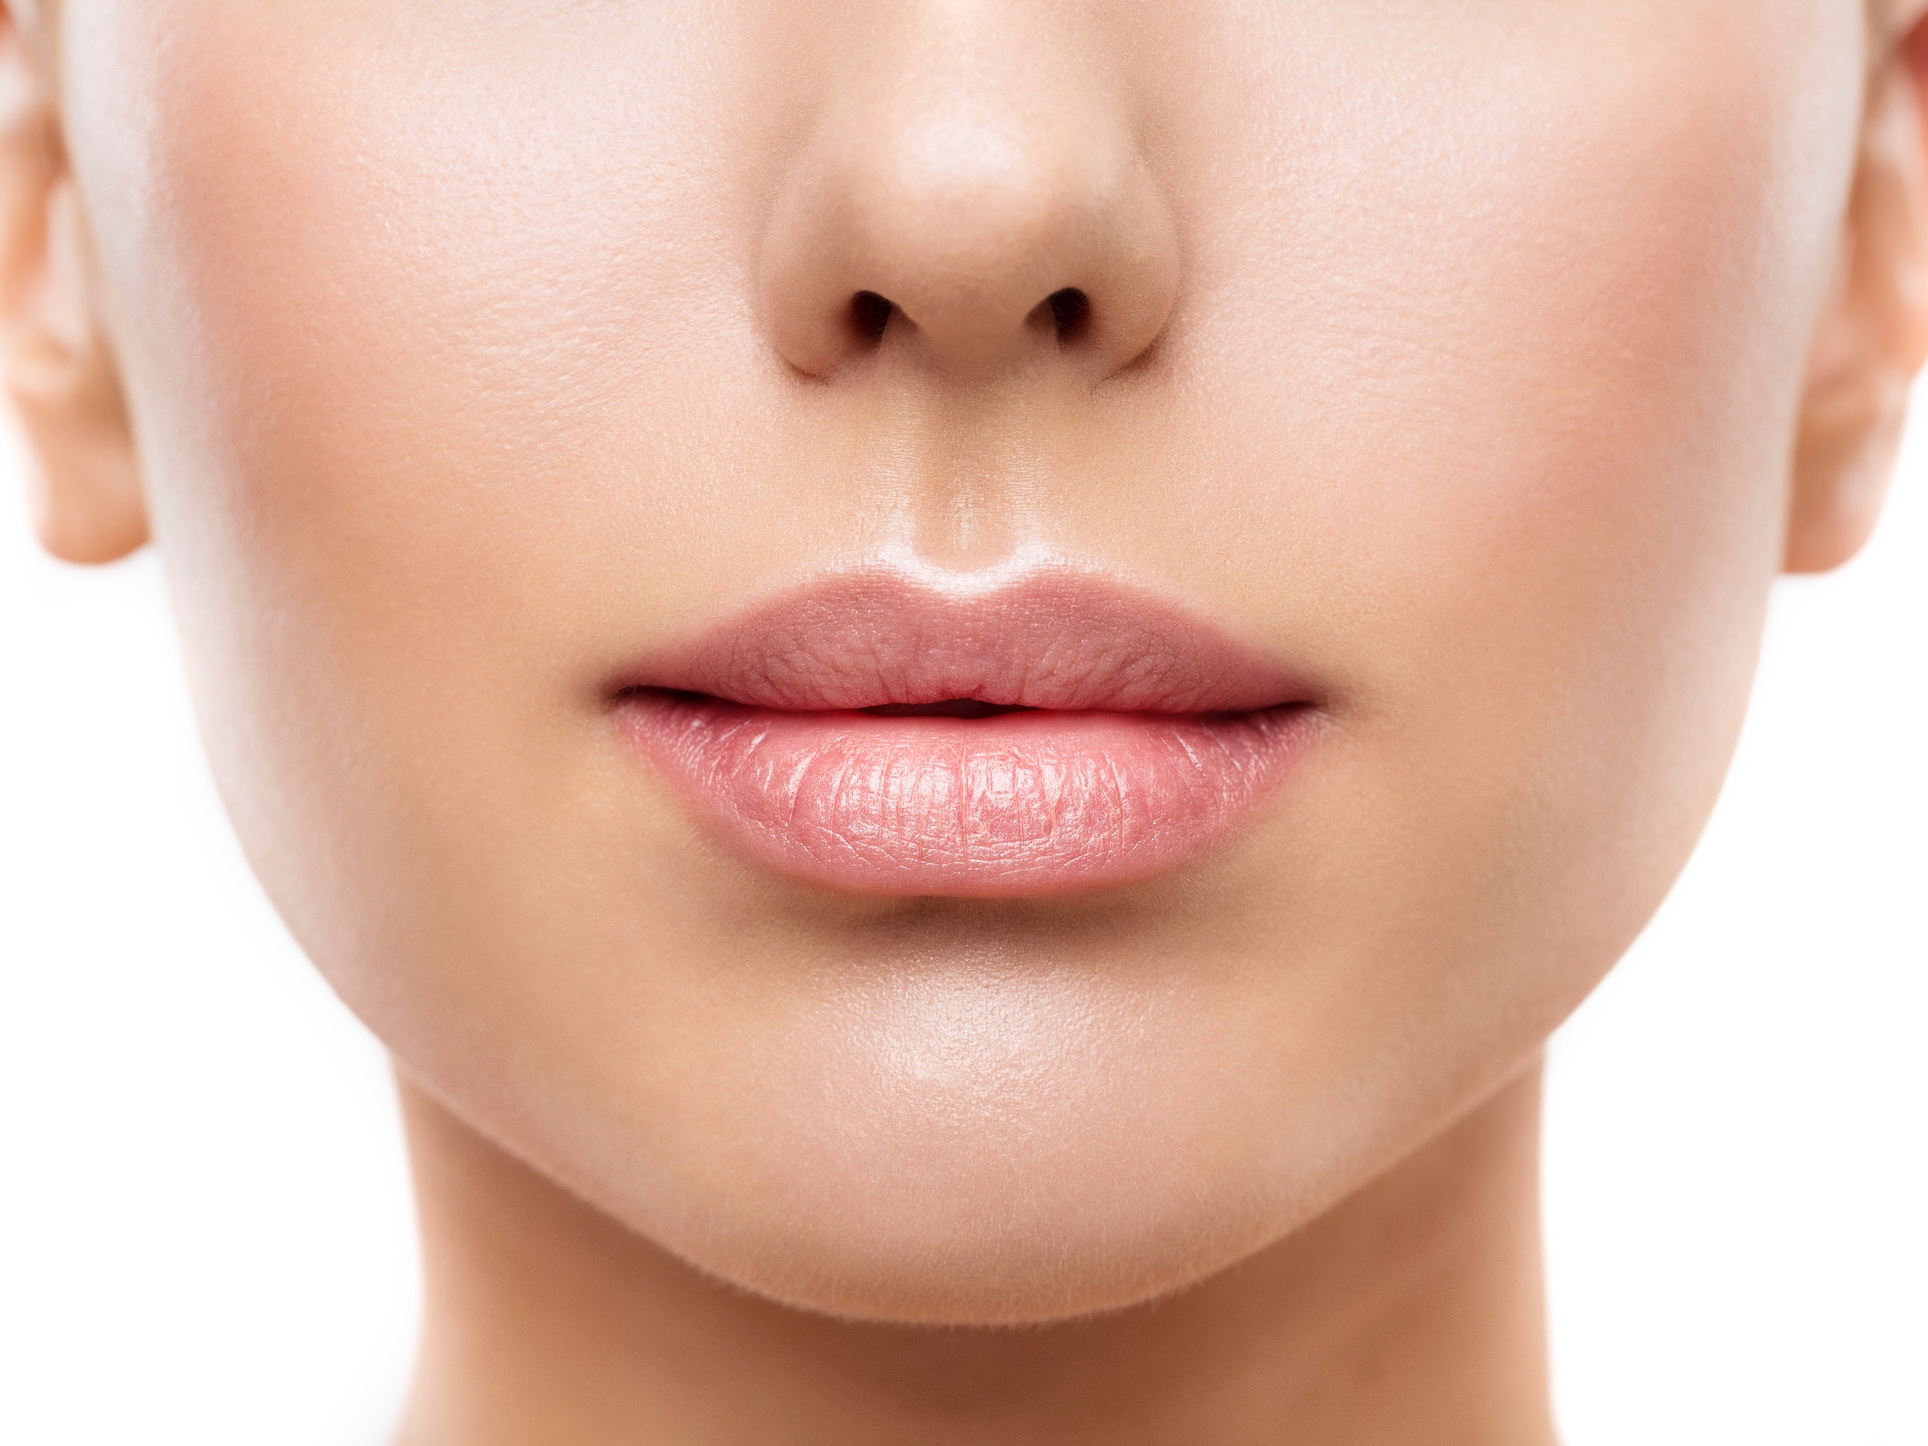 Dermal Filler - As we age, our face loses volume (collagen) and our facial features begin to deflate and descend.